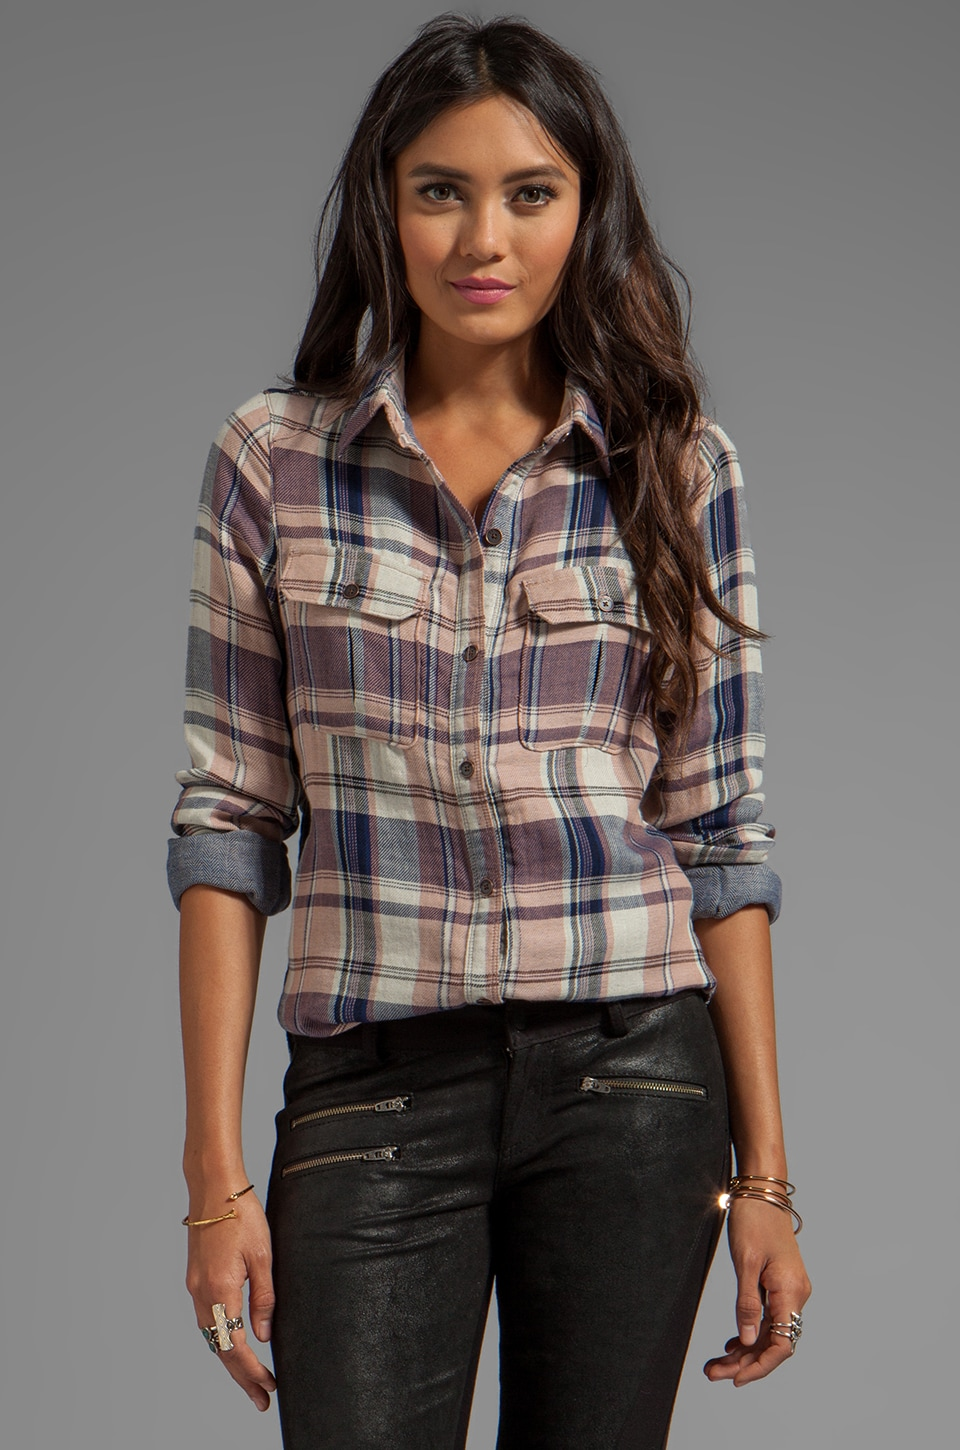 PAIGE Kadie Shirt in First Kiss Plaid